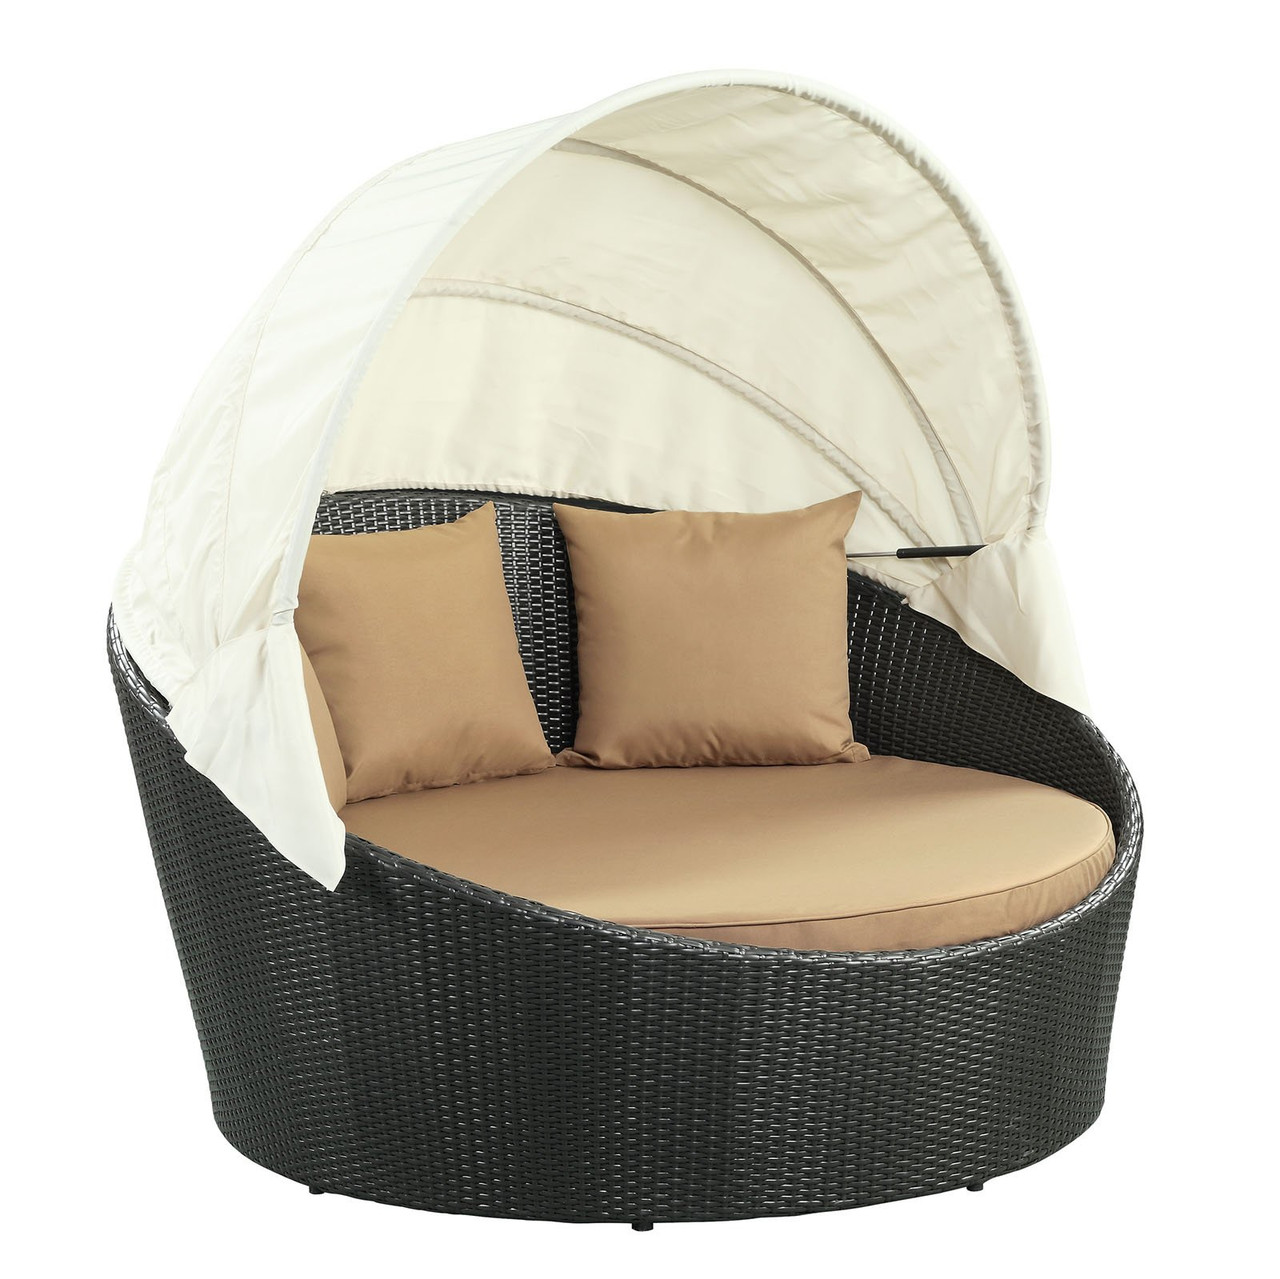 modway siesta canopy outdoor patio daybed eei 642 exp moc